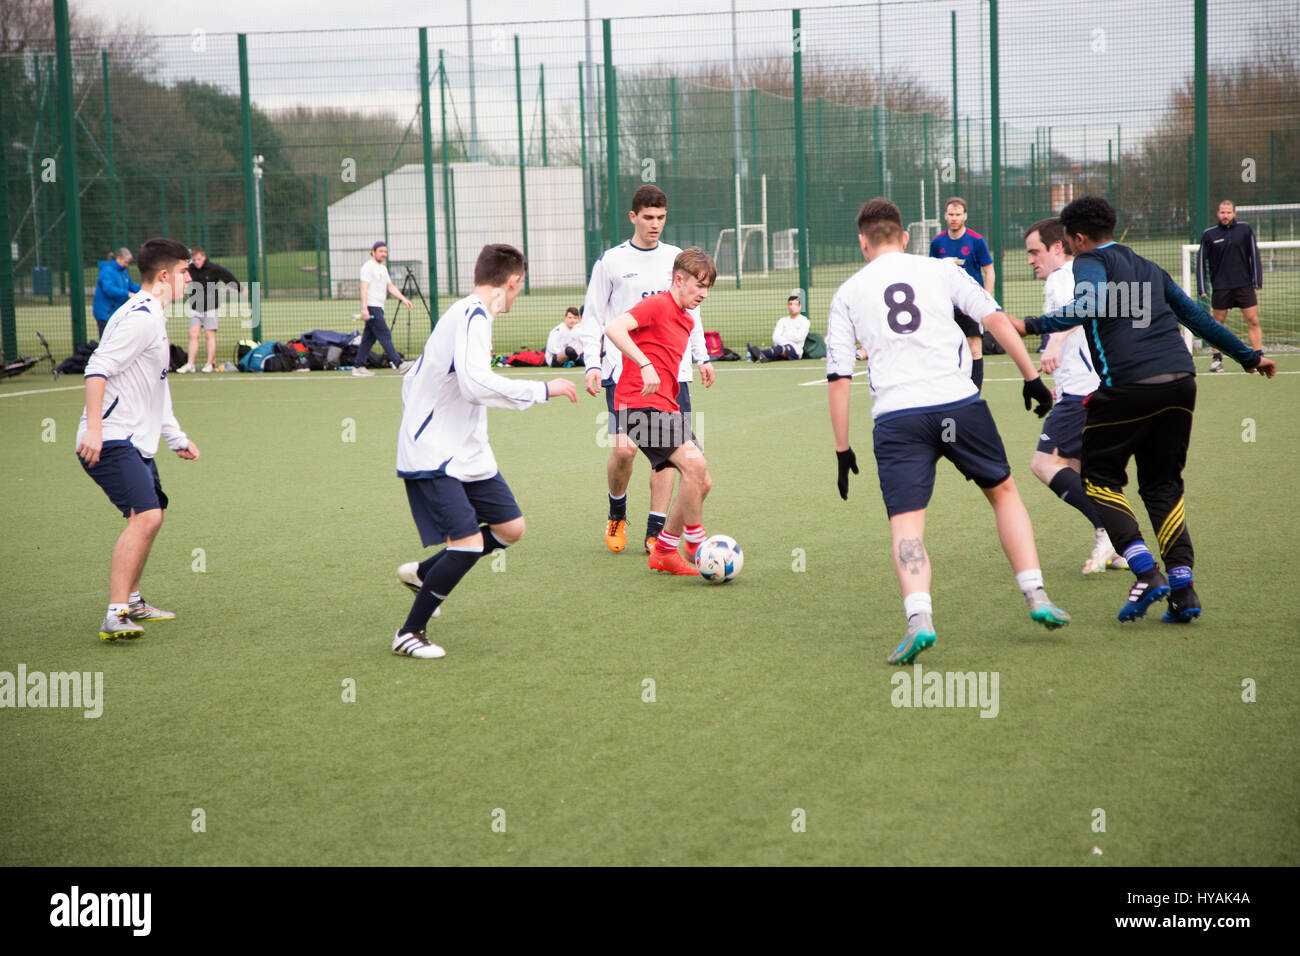 Teenagers playing 5 A Side football in Dublin city, Ireland. Stock Photo